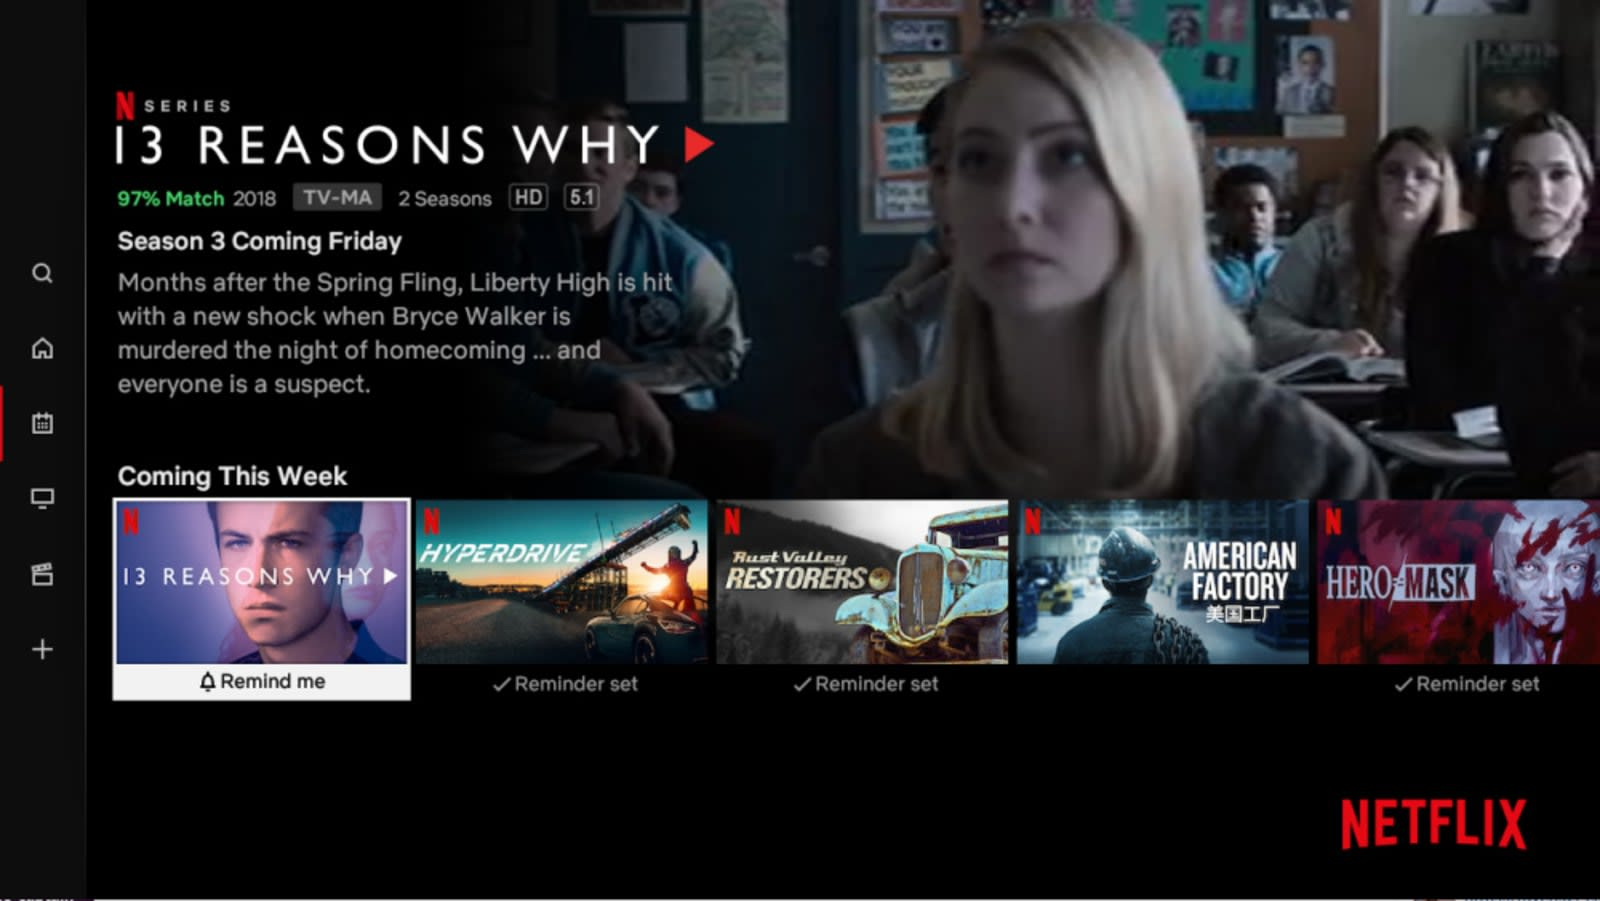 Netflix gives new and upcoming releases their own tab in its TV app